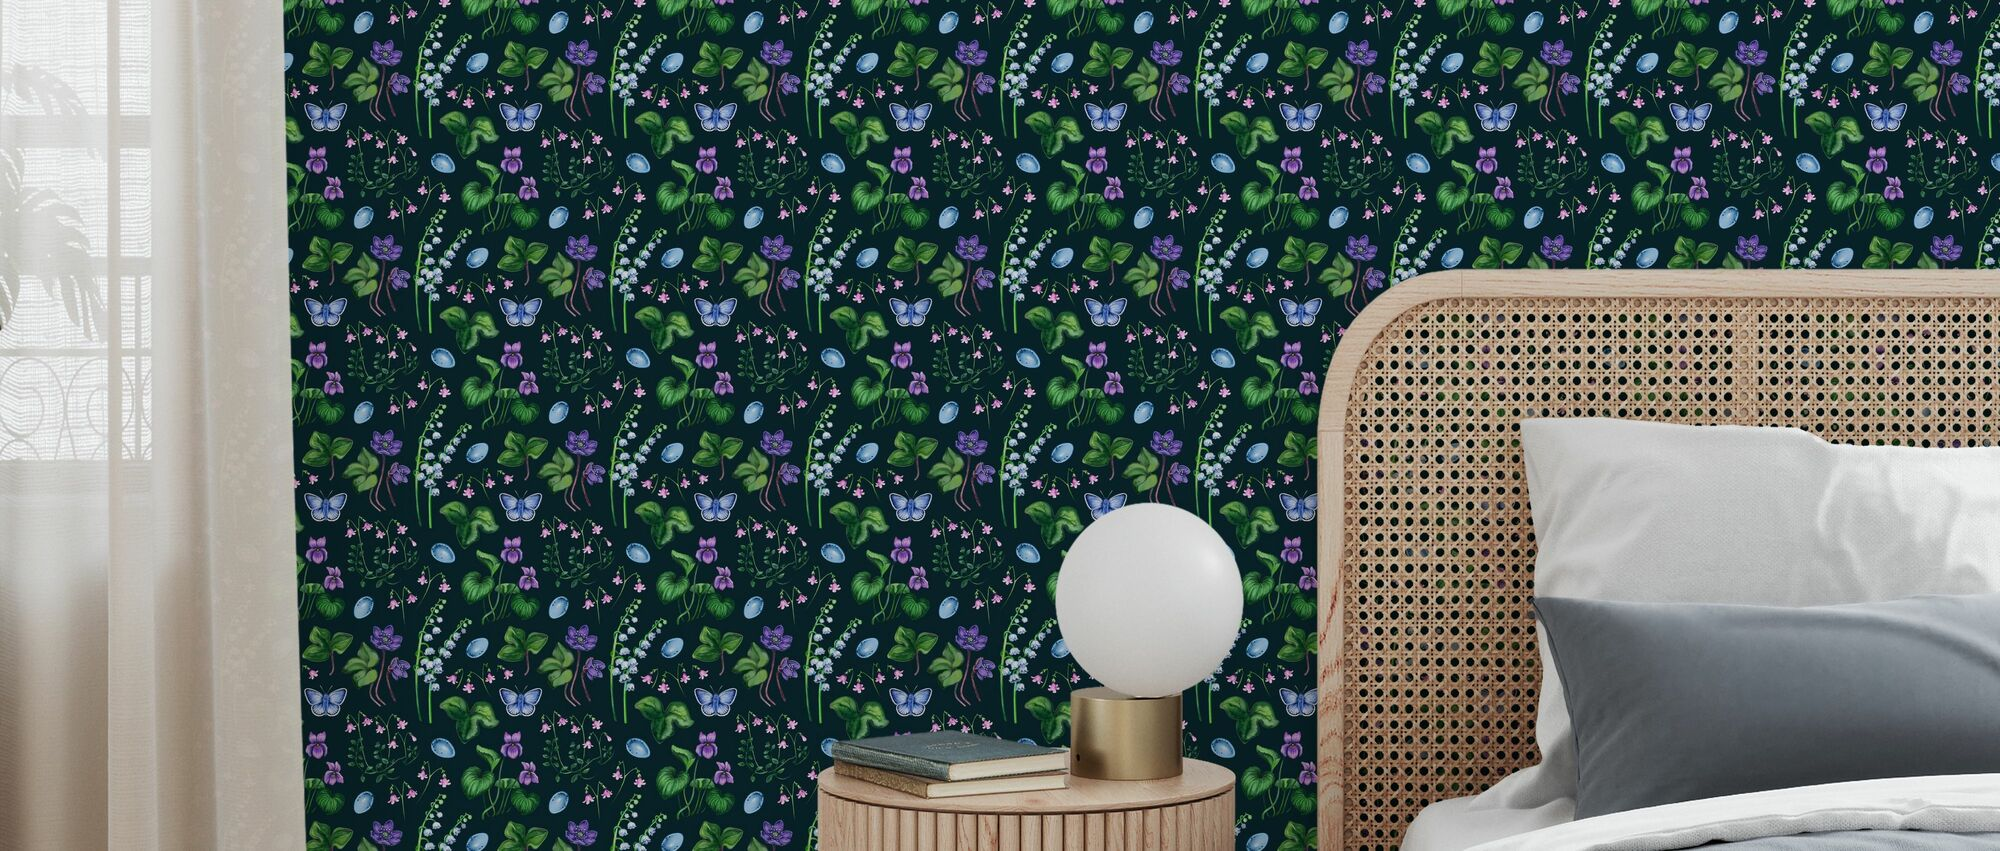 The Forest Meadow Night - Wallpaper - Bedroom